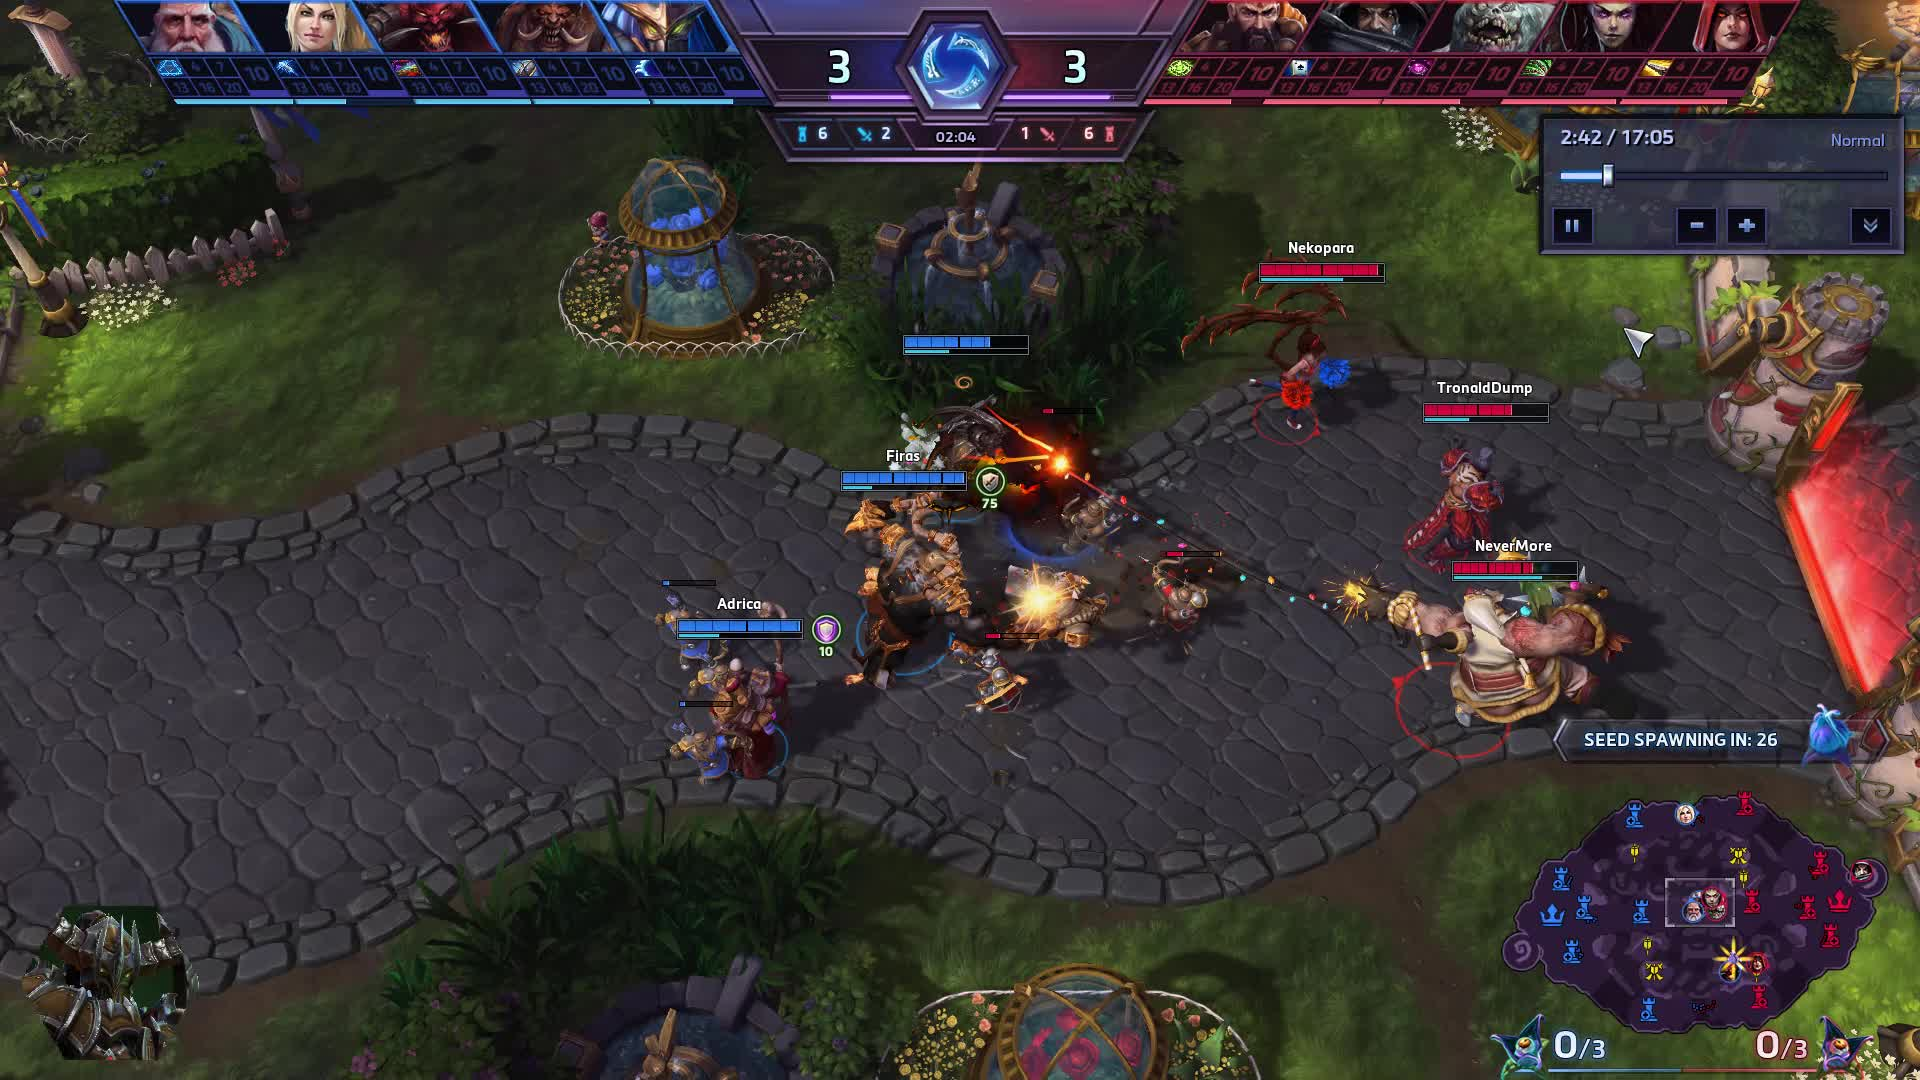 heroesofthestorm, Heroes of the Storm 2019.02.25 - 12.19.07.03 GIFs